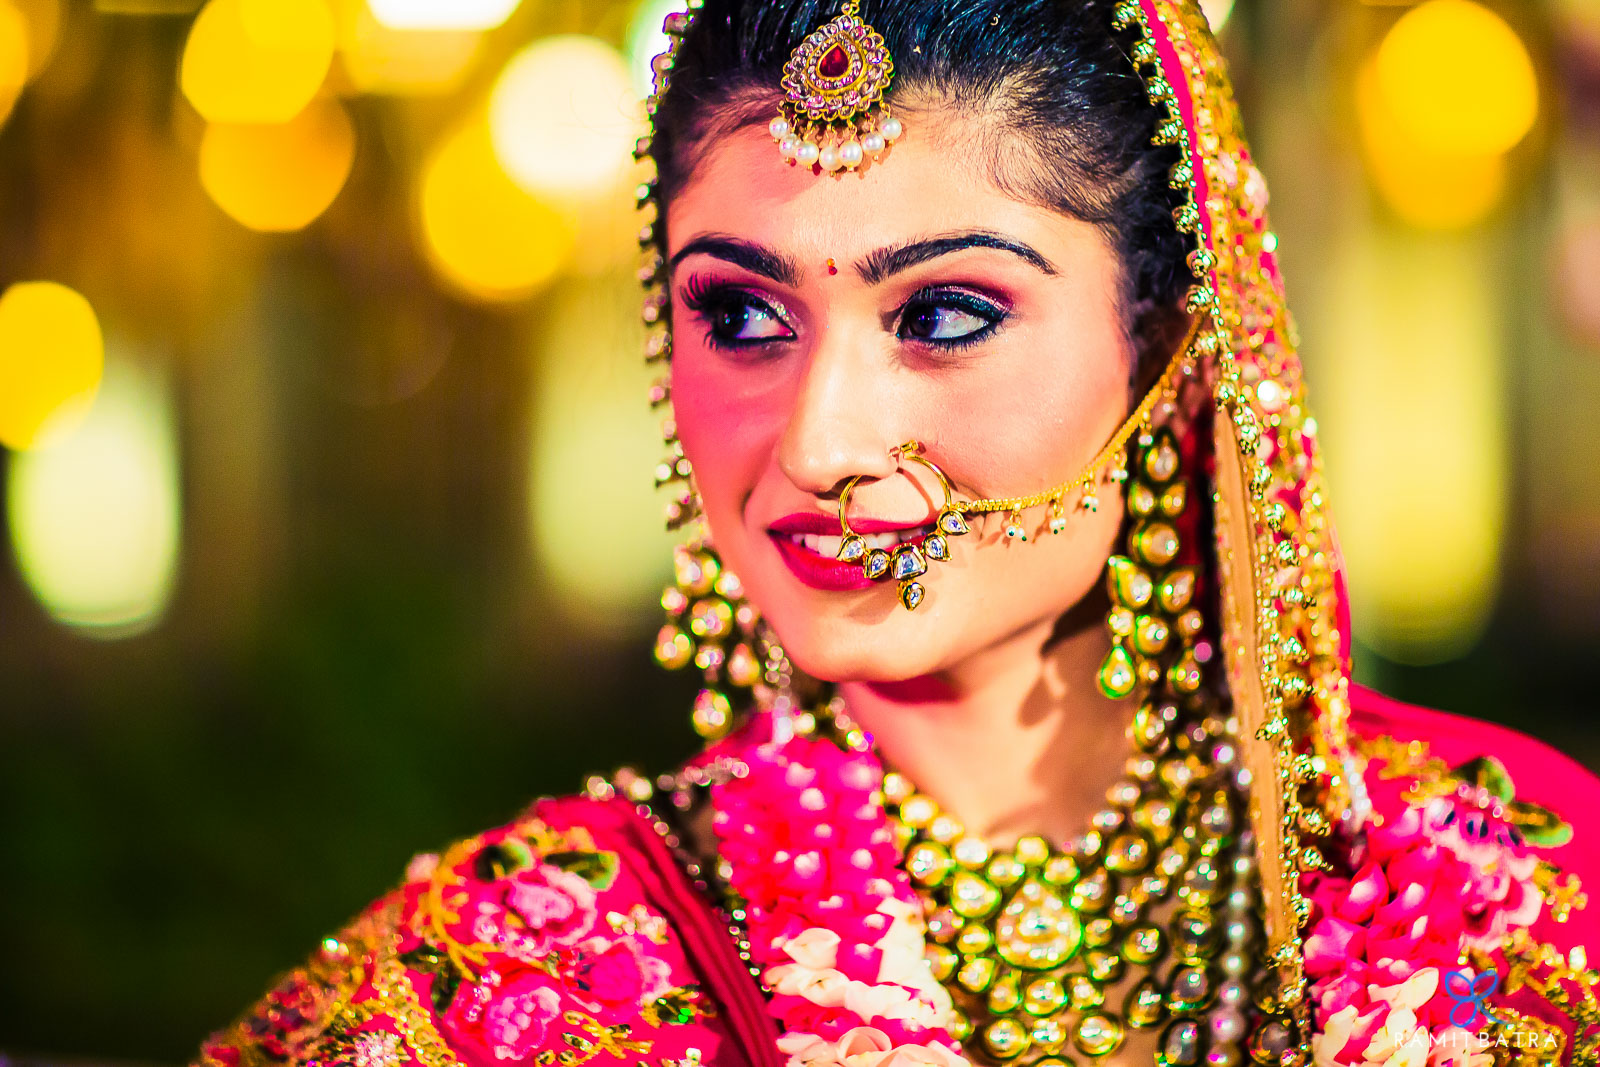 Wedding-Photographer-Hyderabad-India-RamitBatra_57